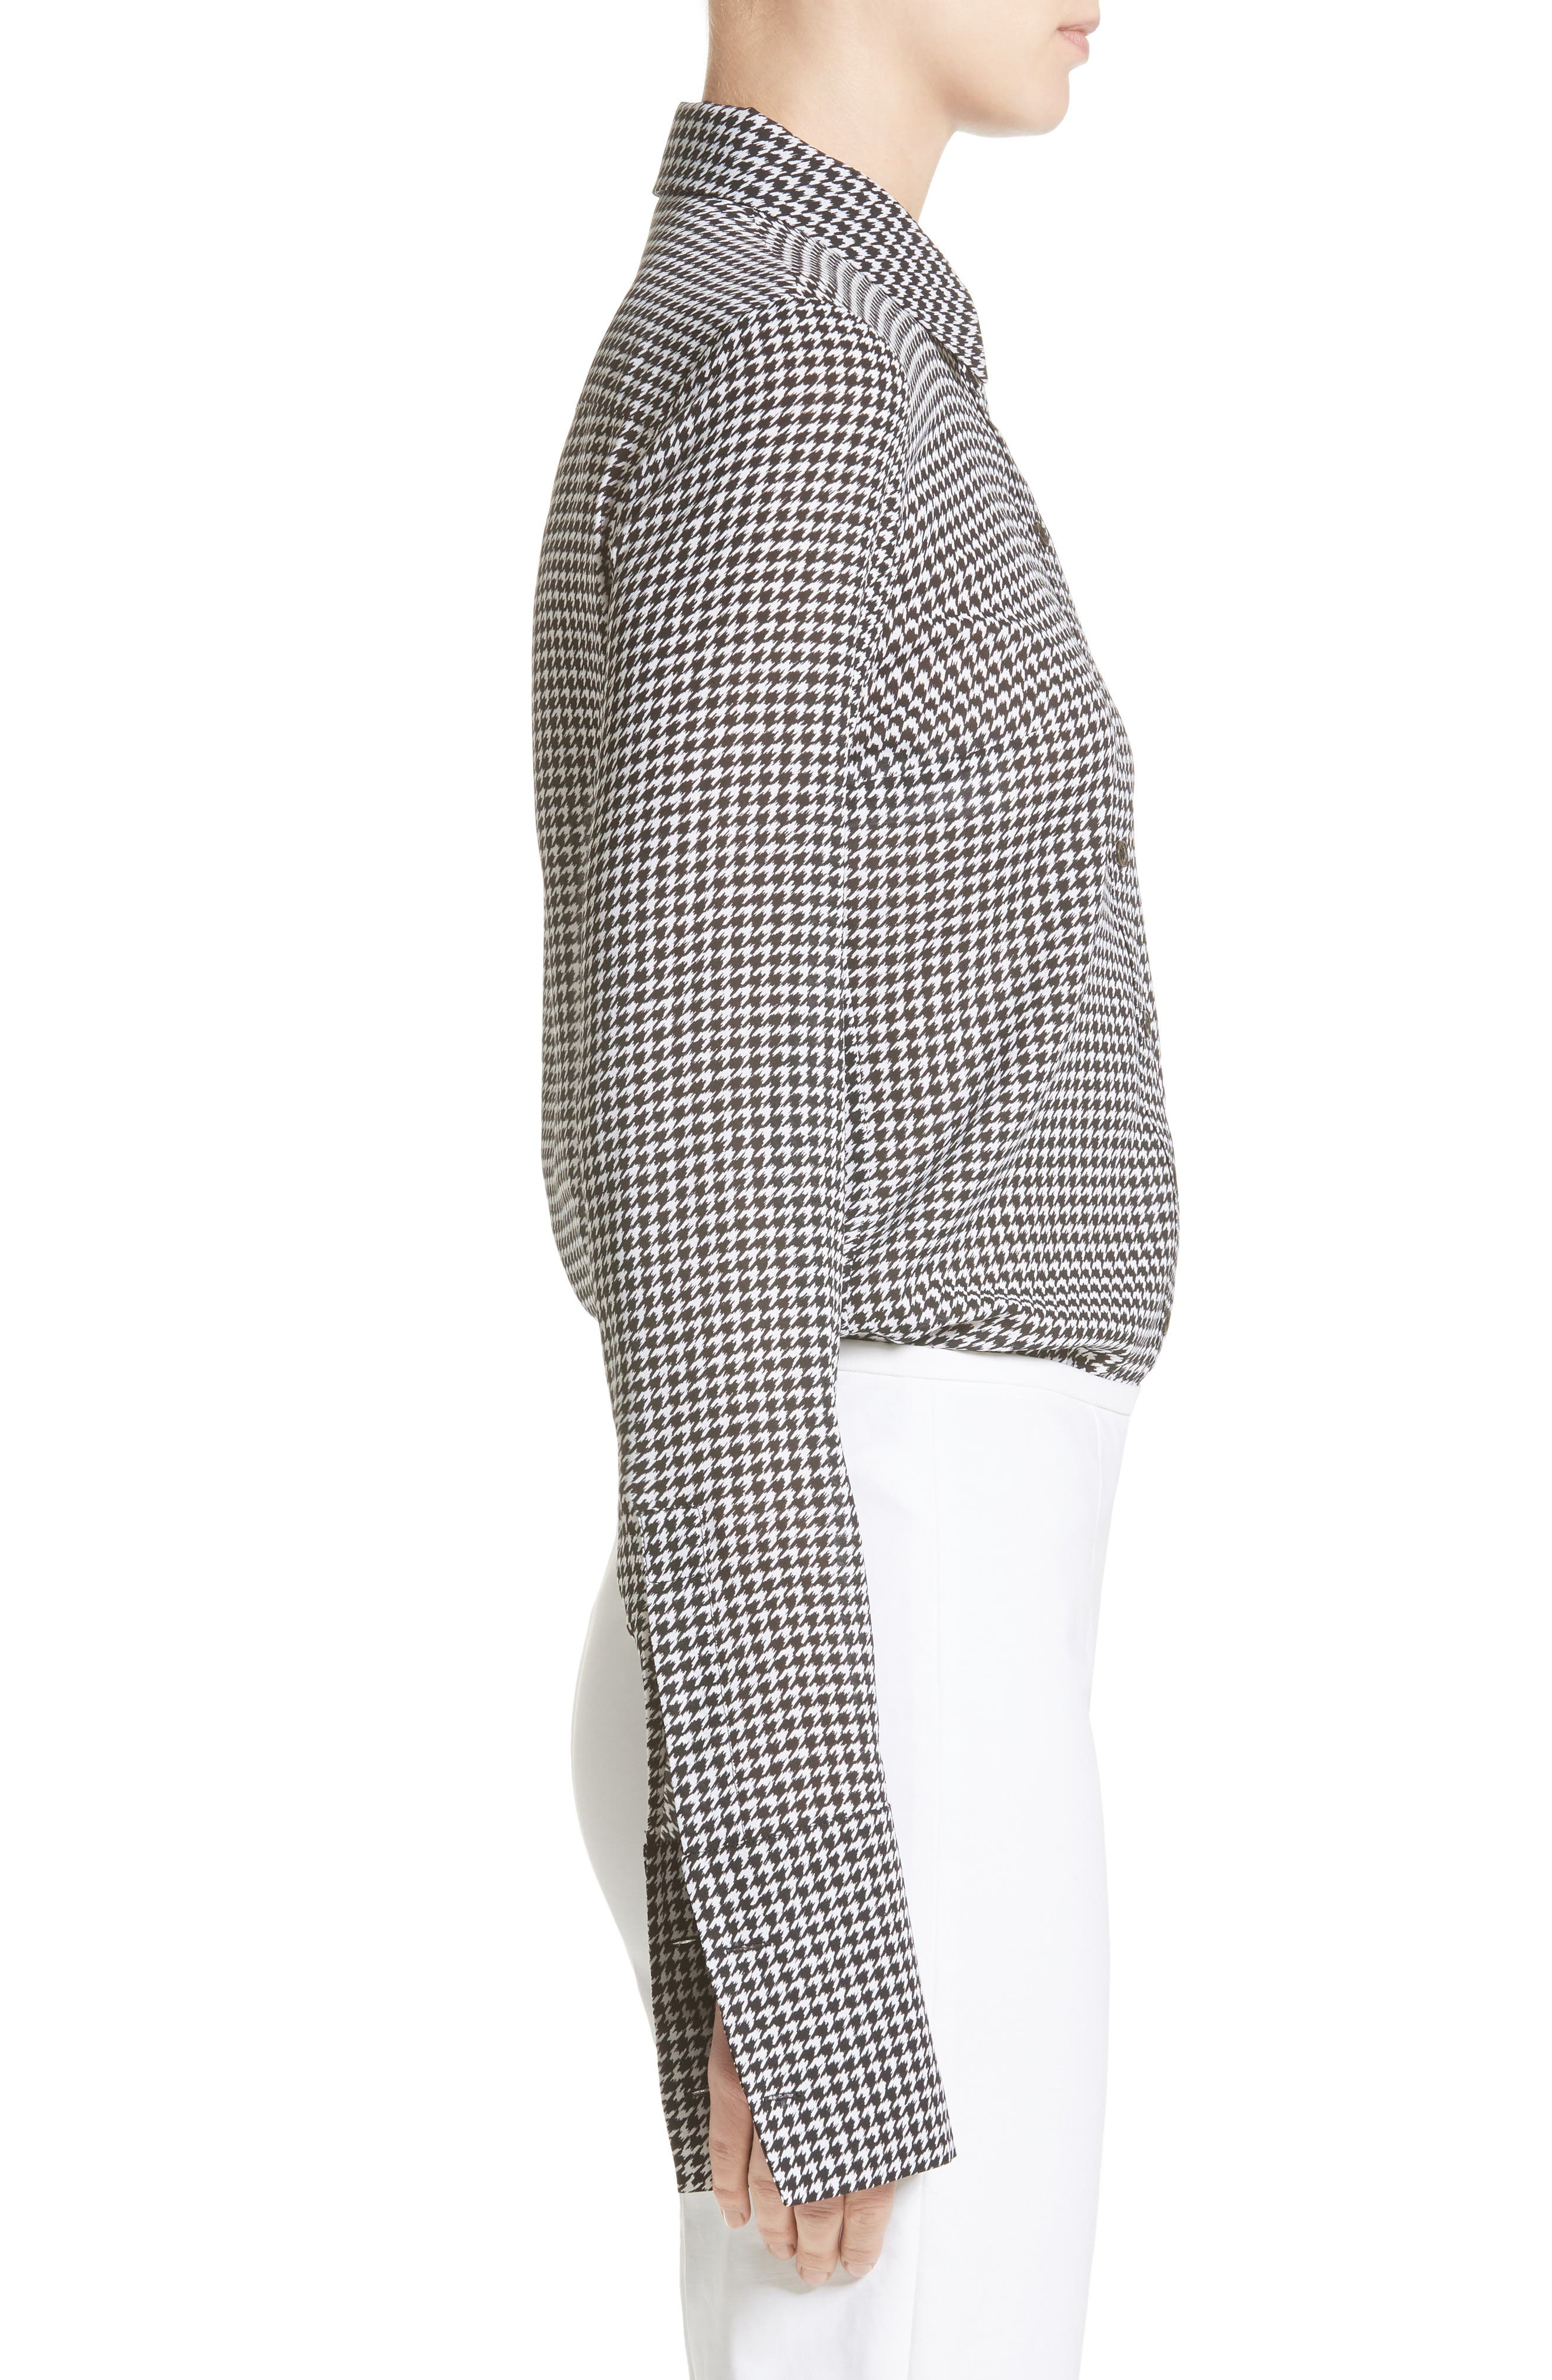 Houndstooth Silk Georgette Shirt,                             Alternate thumbnail 3, color,                             003